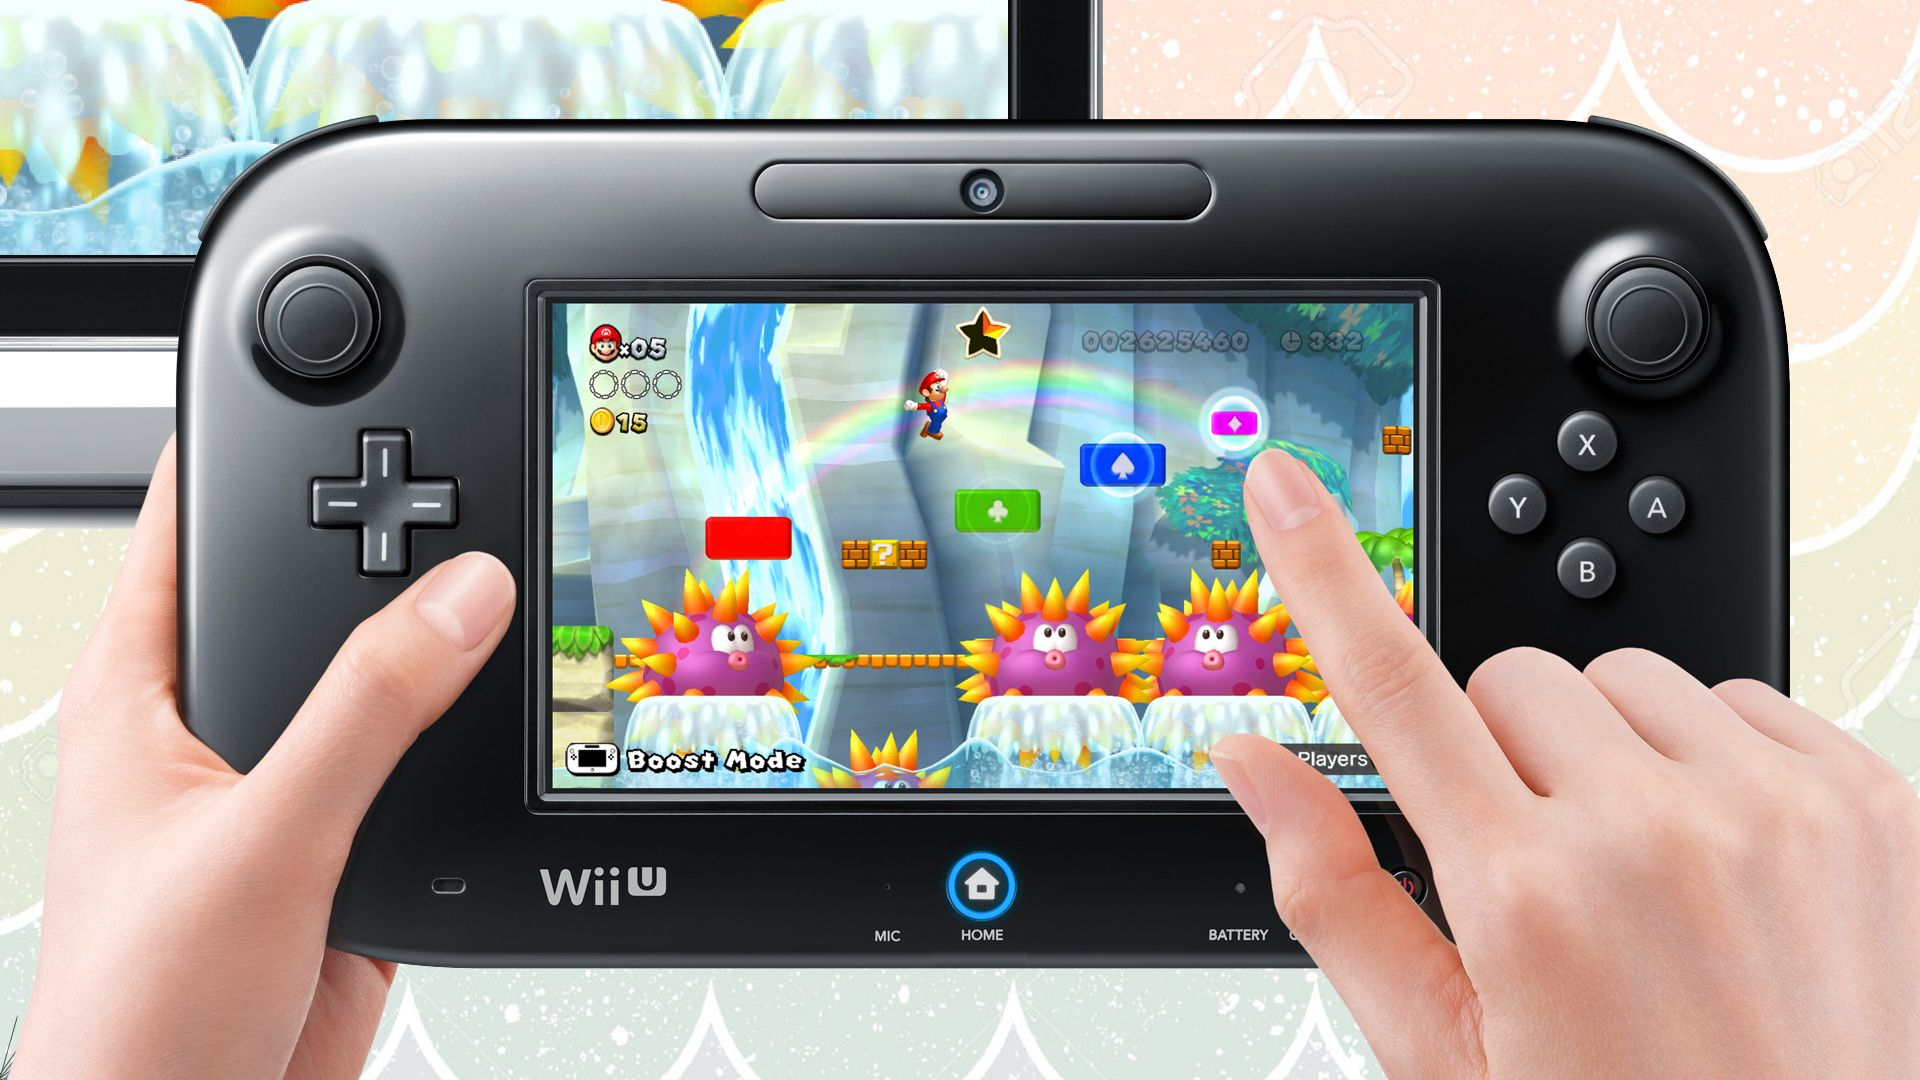 how to play free wii games on wii u